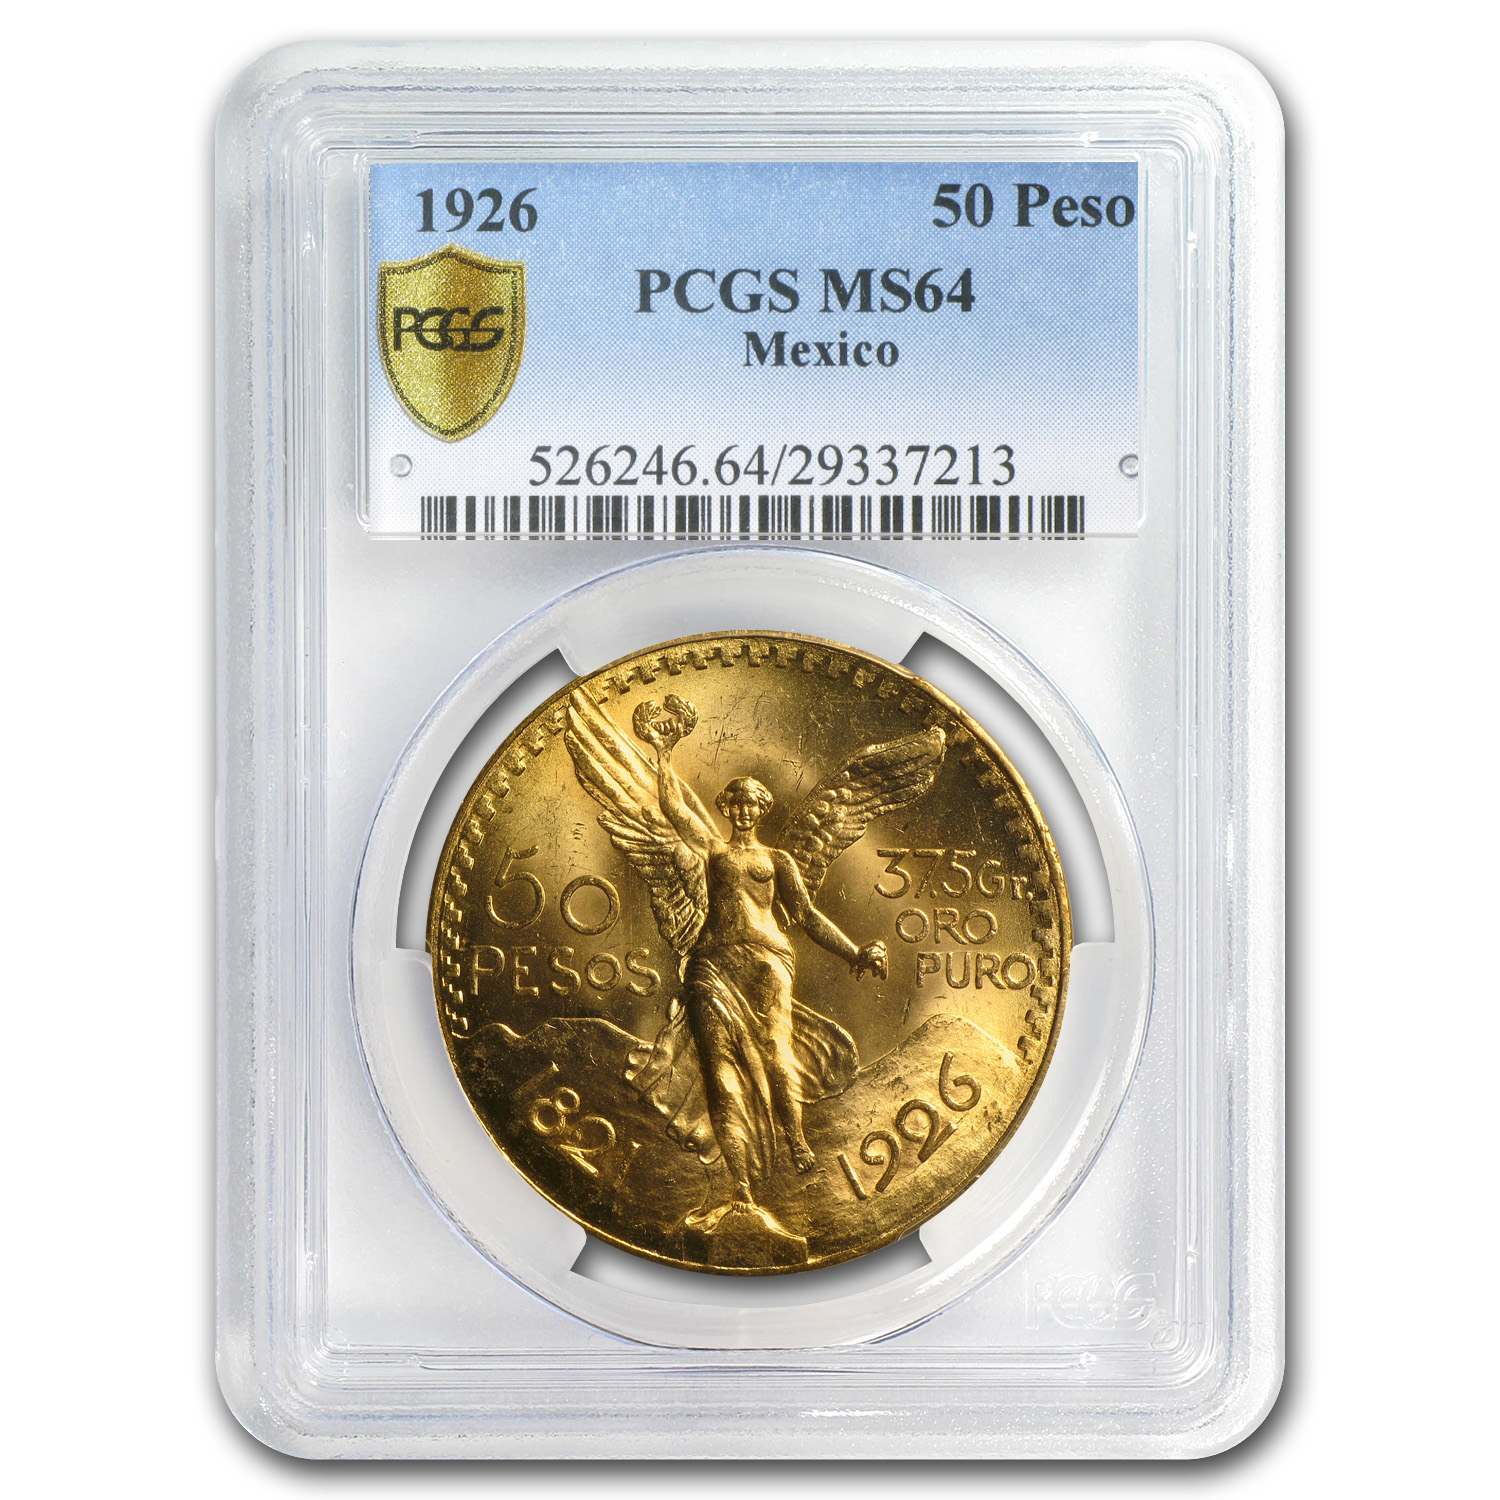 Mexico 1926 50 Pesos Gold Coin - MS-64 PCGS (Secure Plus!)